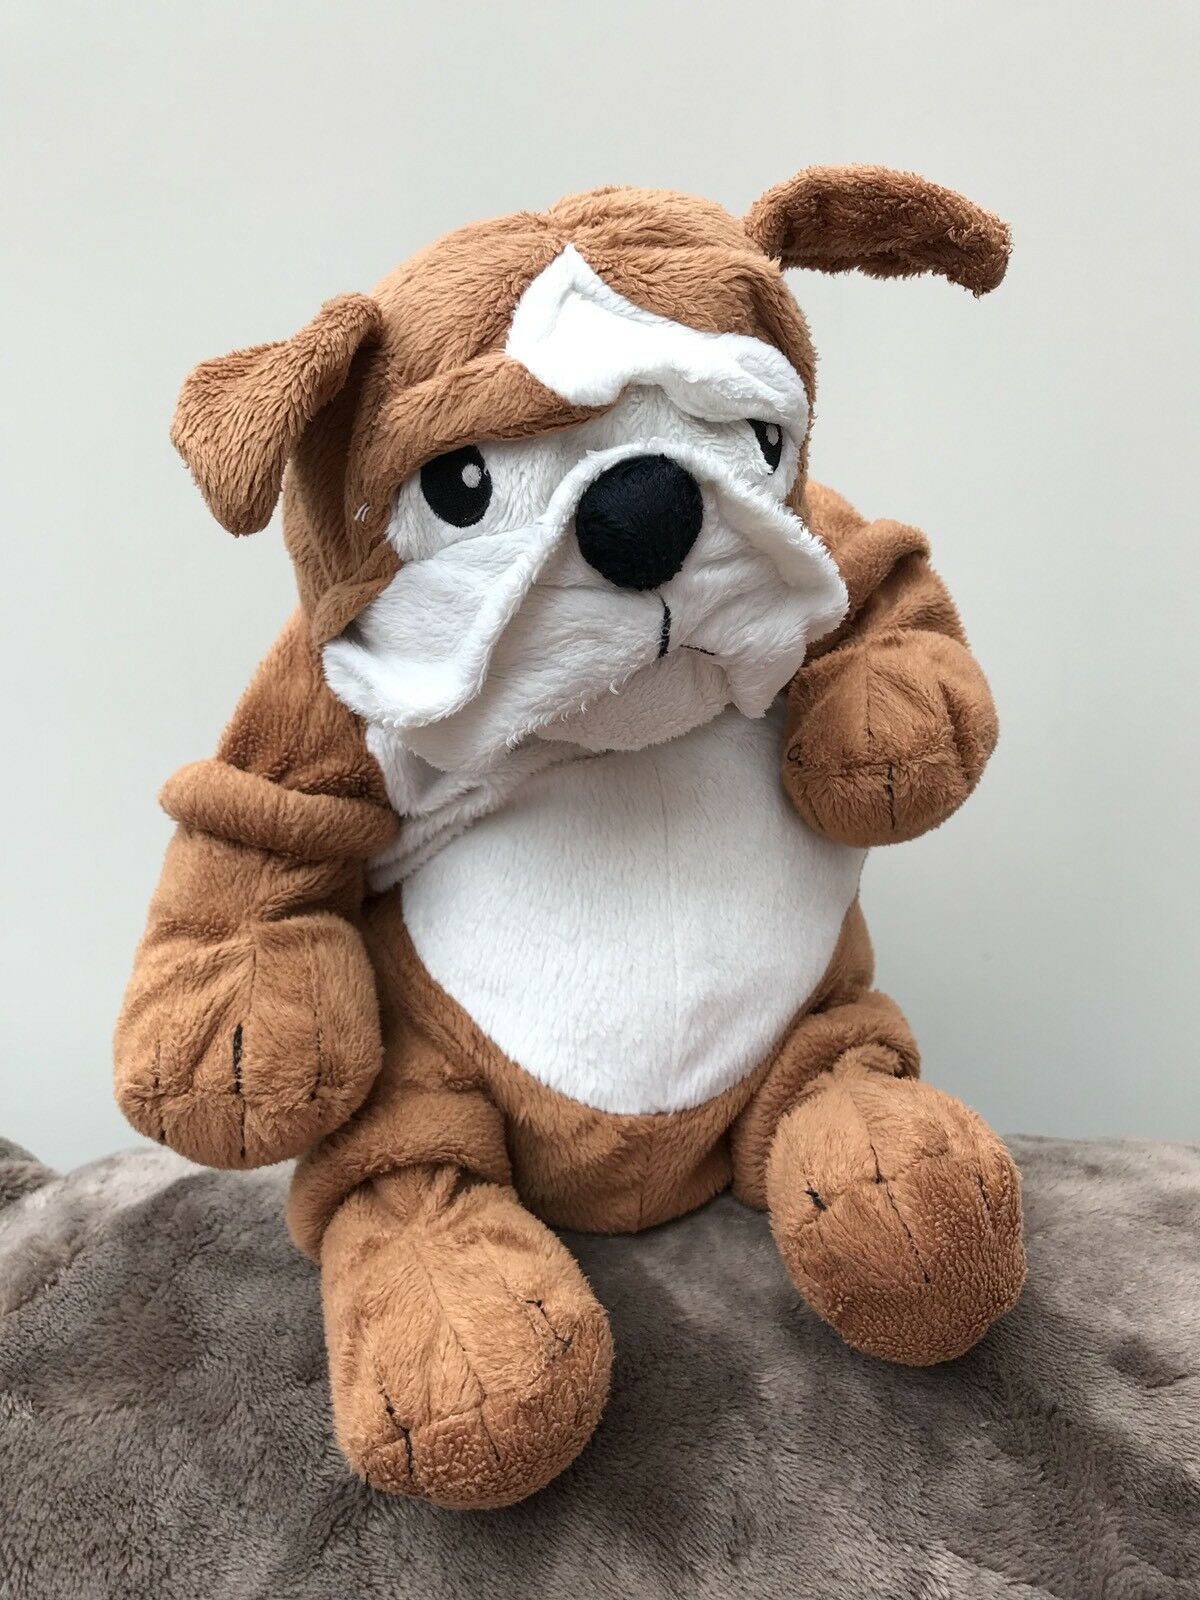 Ikea Klappar Bulldog Dog Soft Toy brown plush chein 15